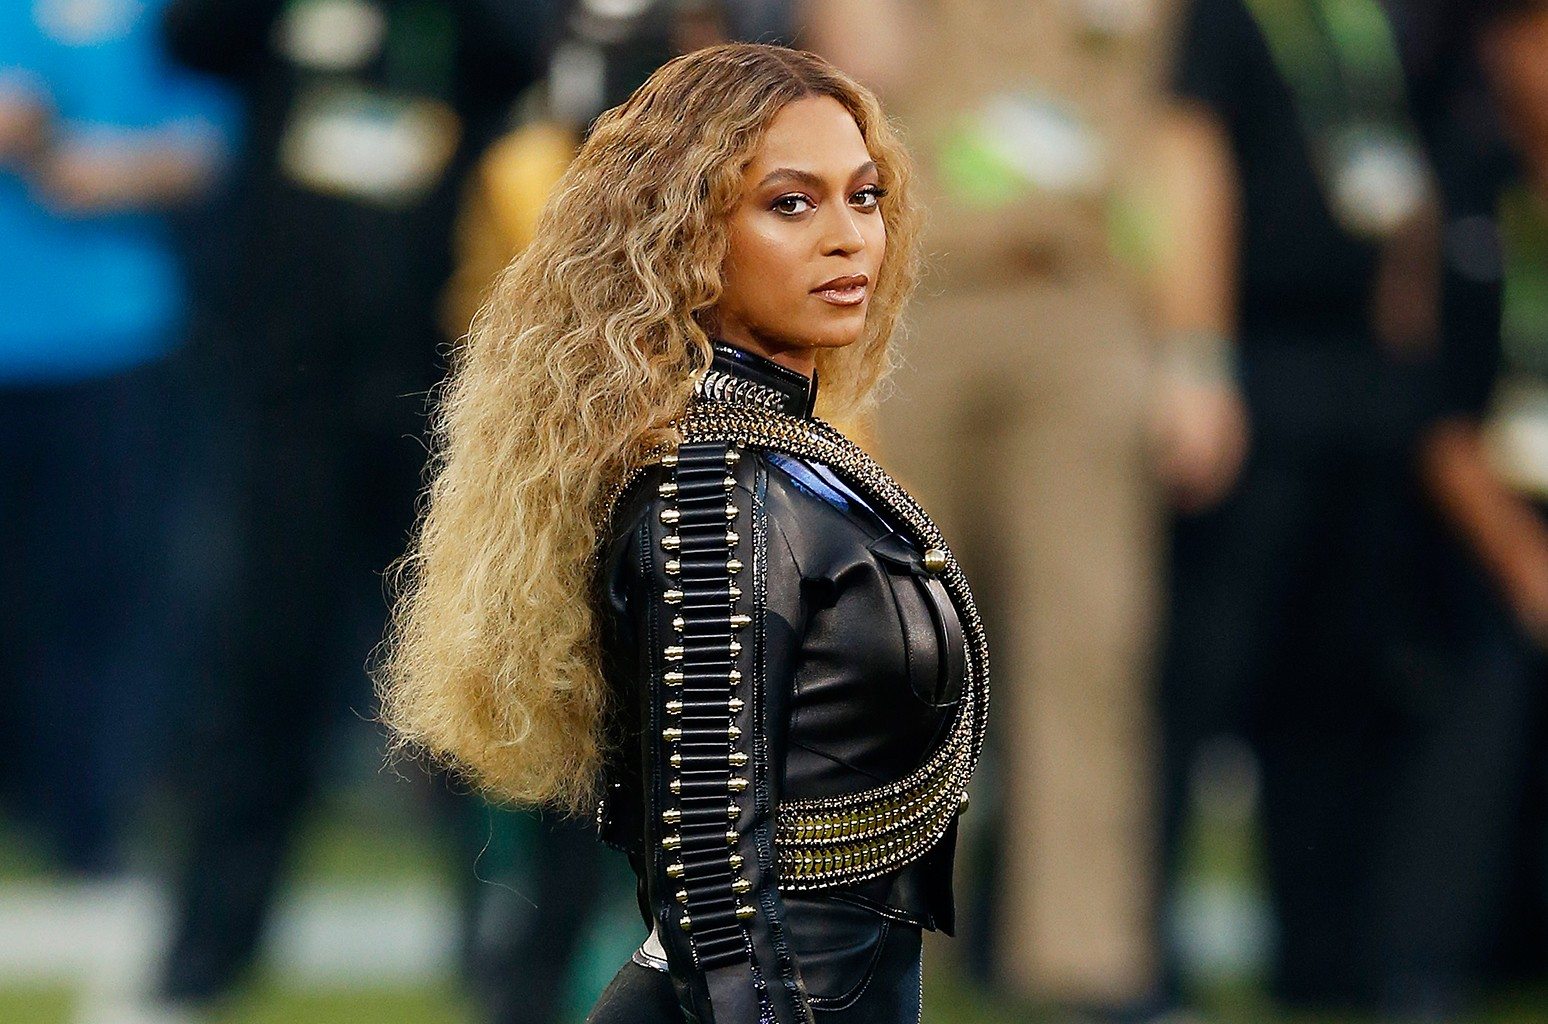 beyonce-makes-history-and-breaks-the-all-time-record-for-the-most-grammy-wins